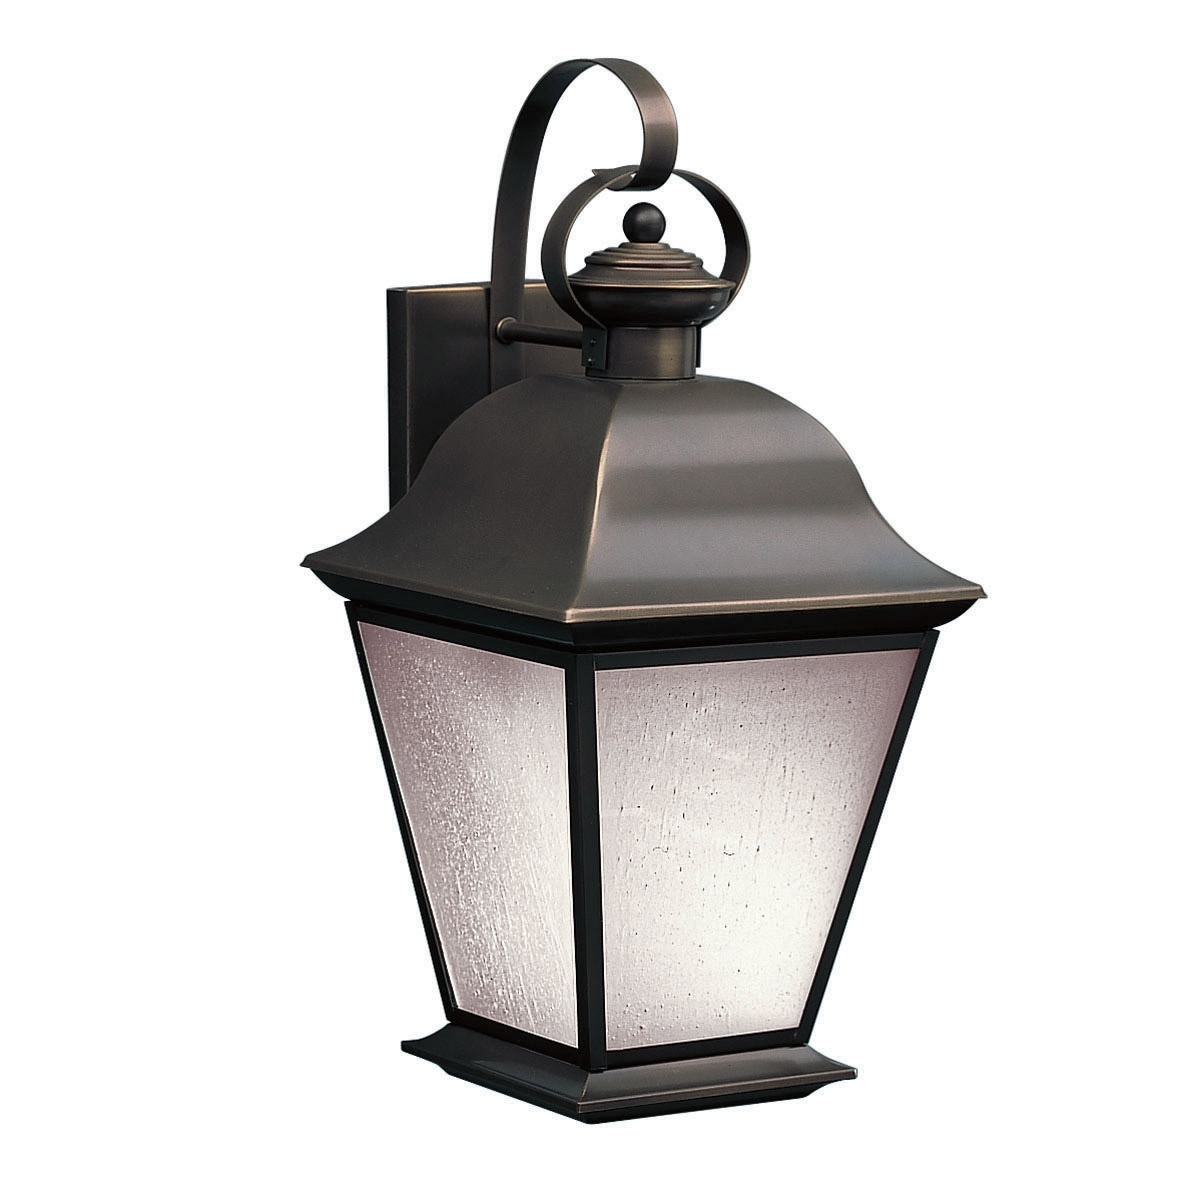 Popular Outdoor Mounted Lanterns Pertaining To Wall Lights Design: Solar Wall Mounted Outdoor Lights In, Solar (View 9 of 20)